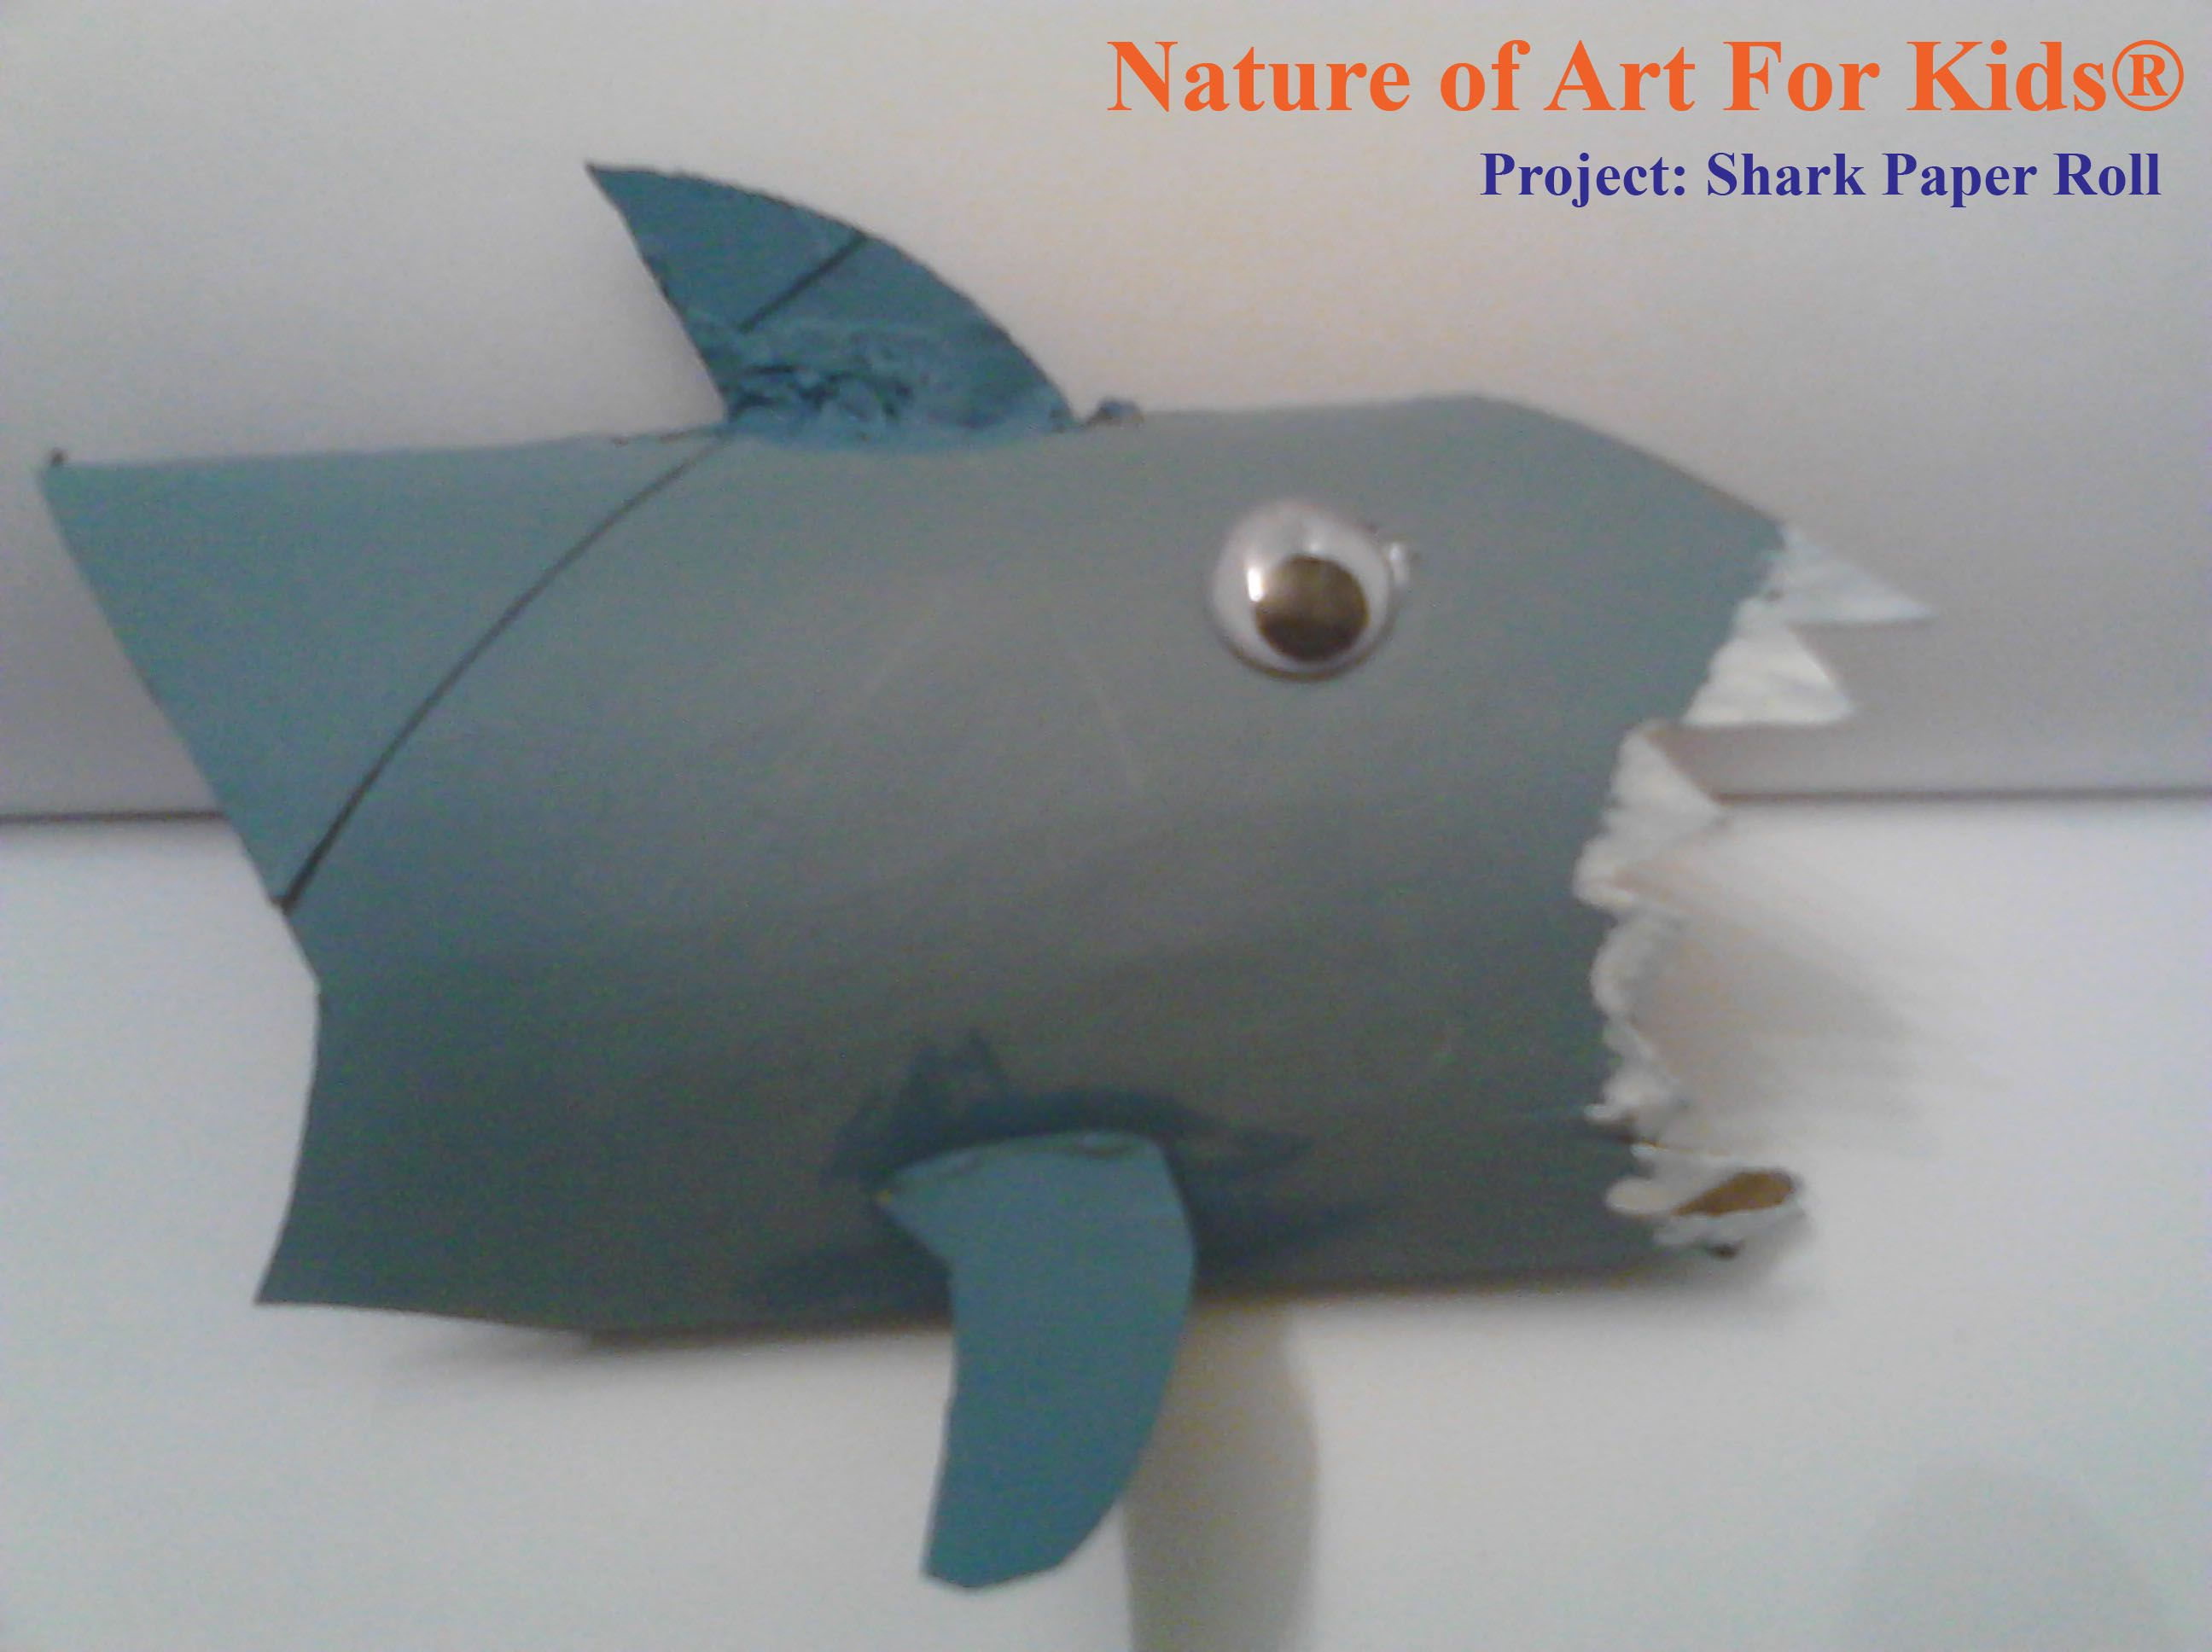 recycled shark alert art project for kids using recycled paper